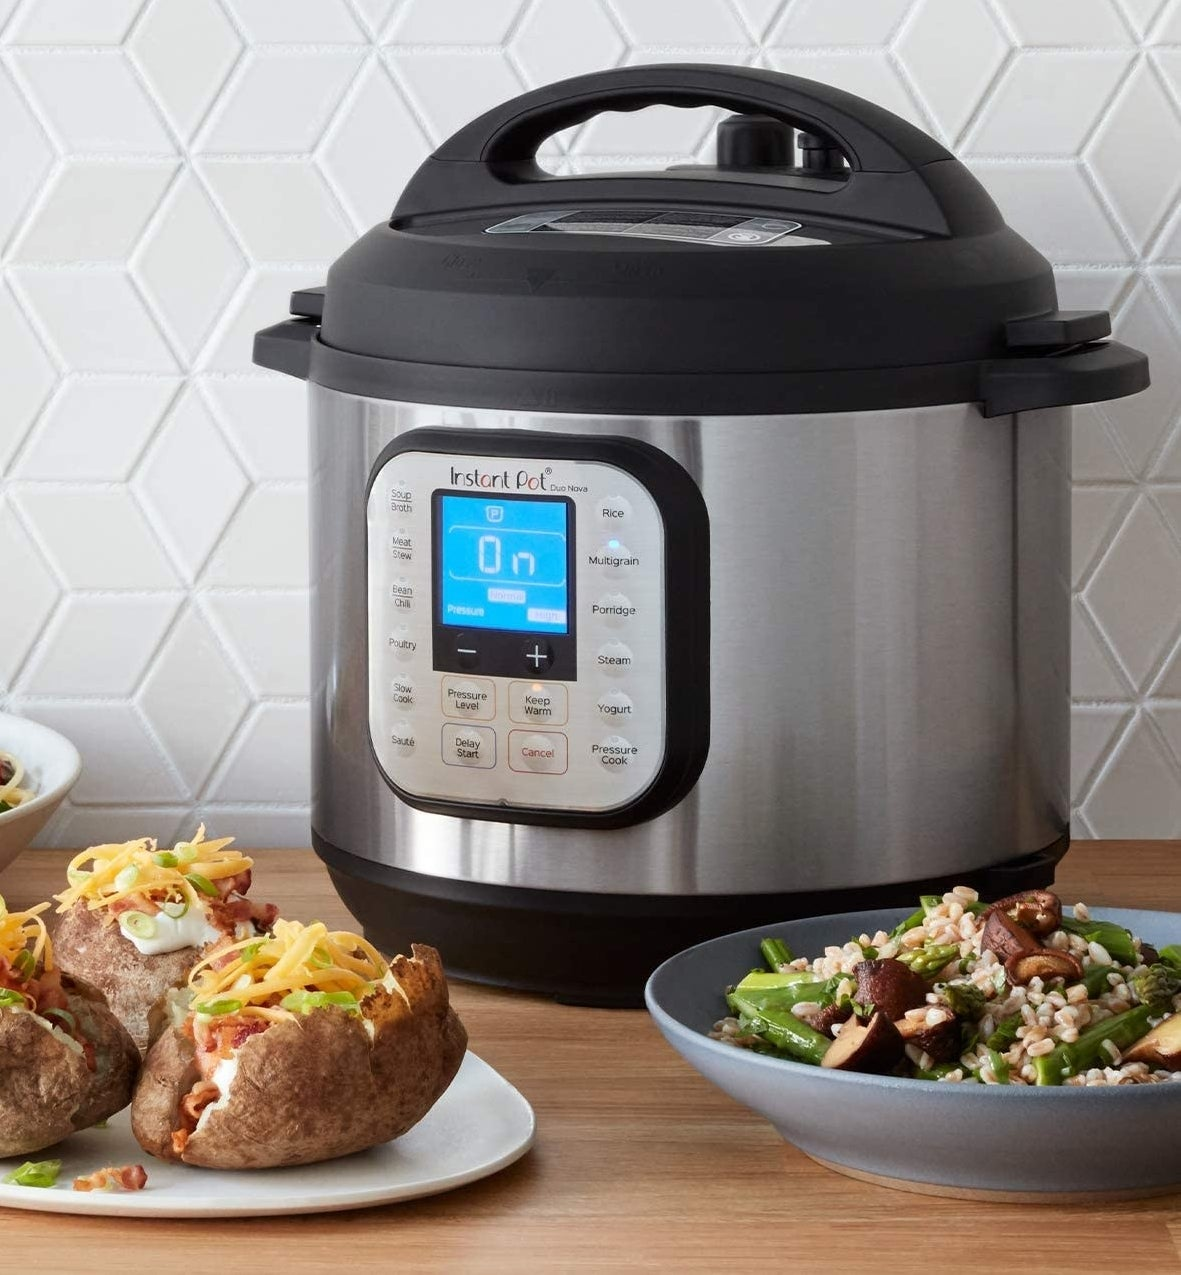 The Instant Pot surrounded by food